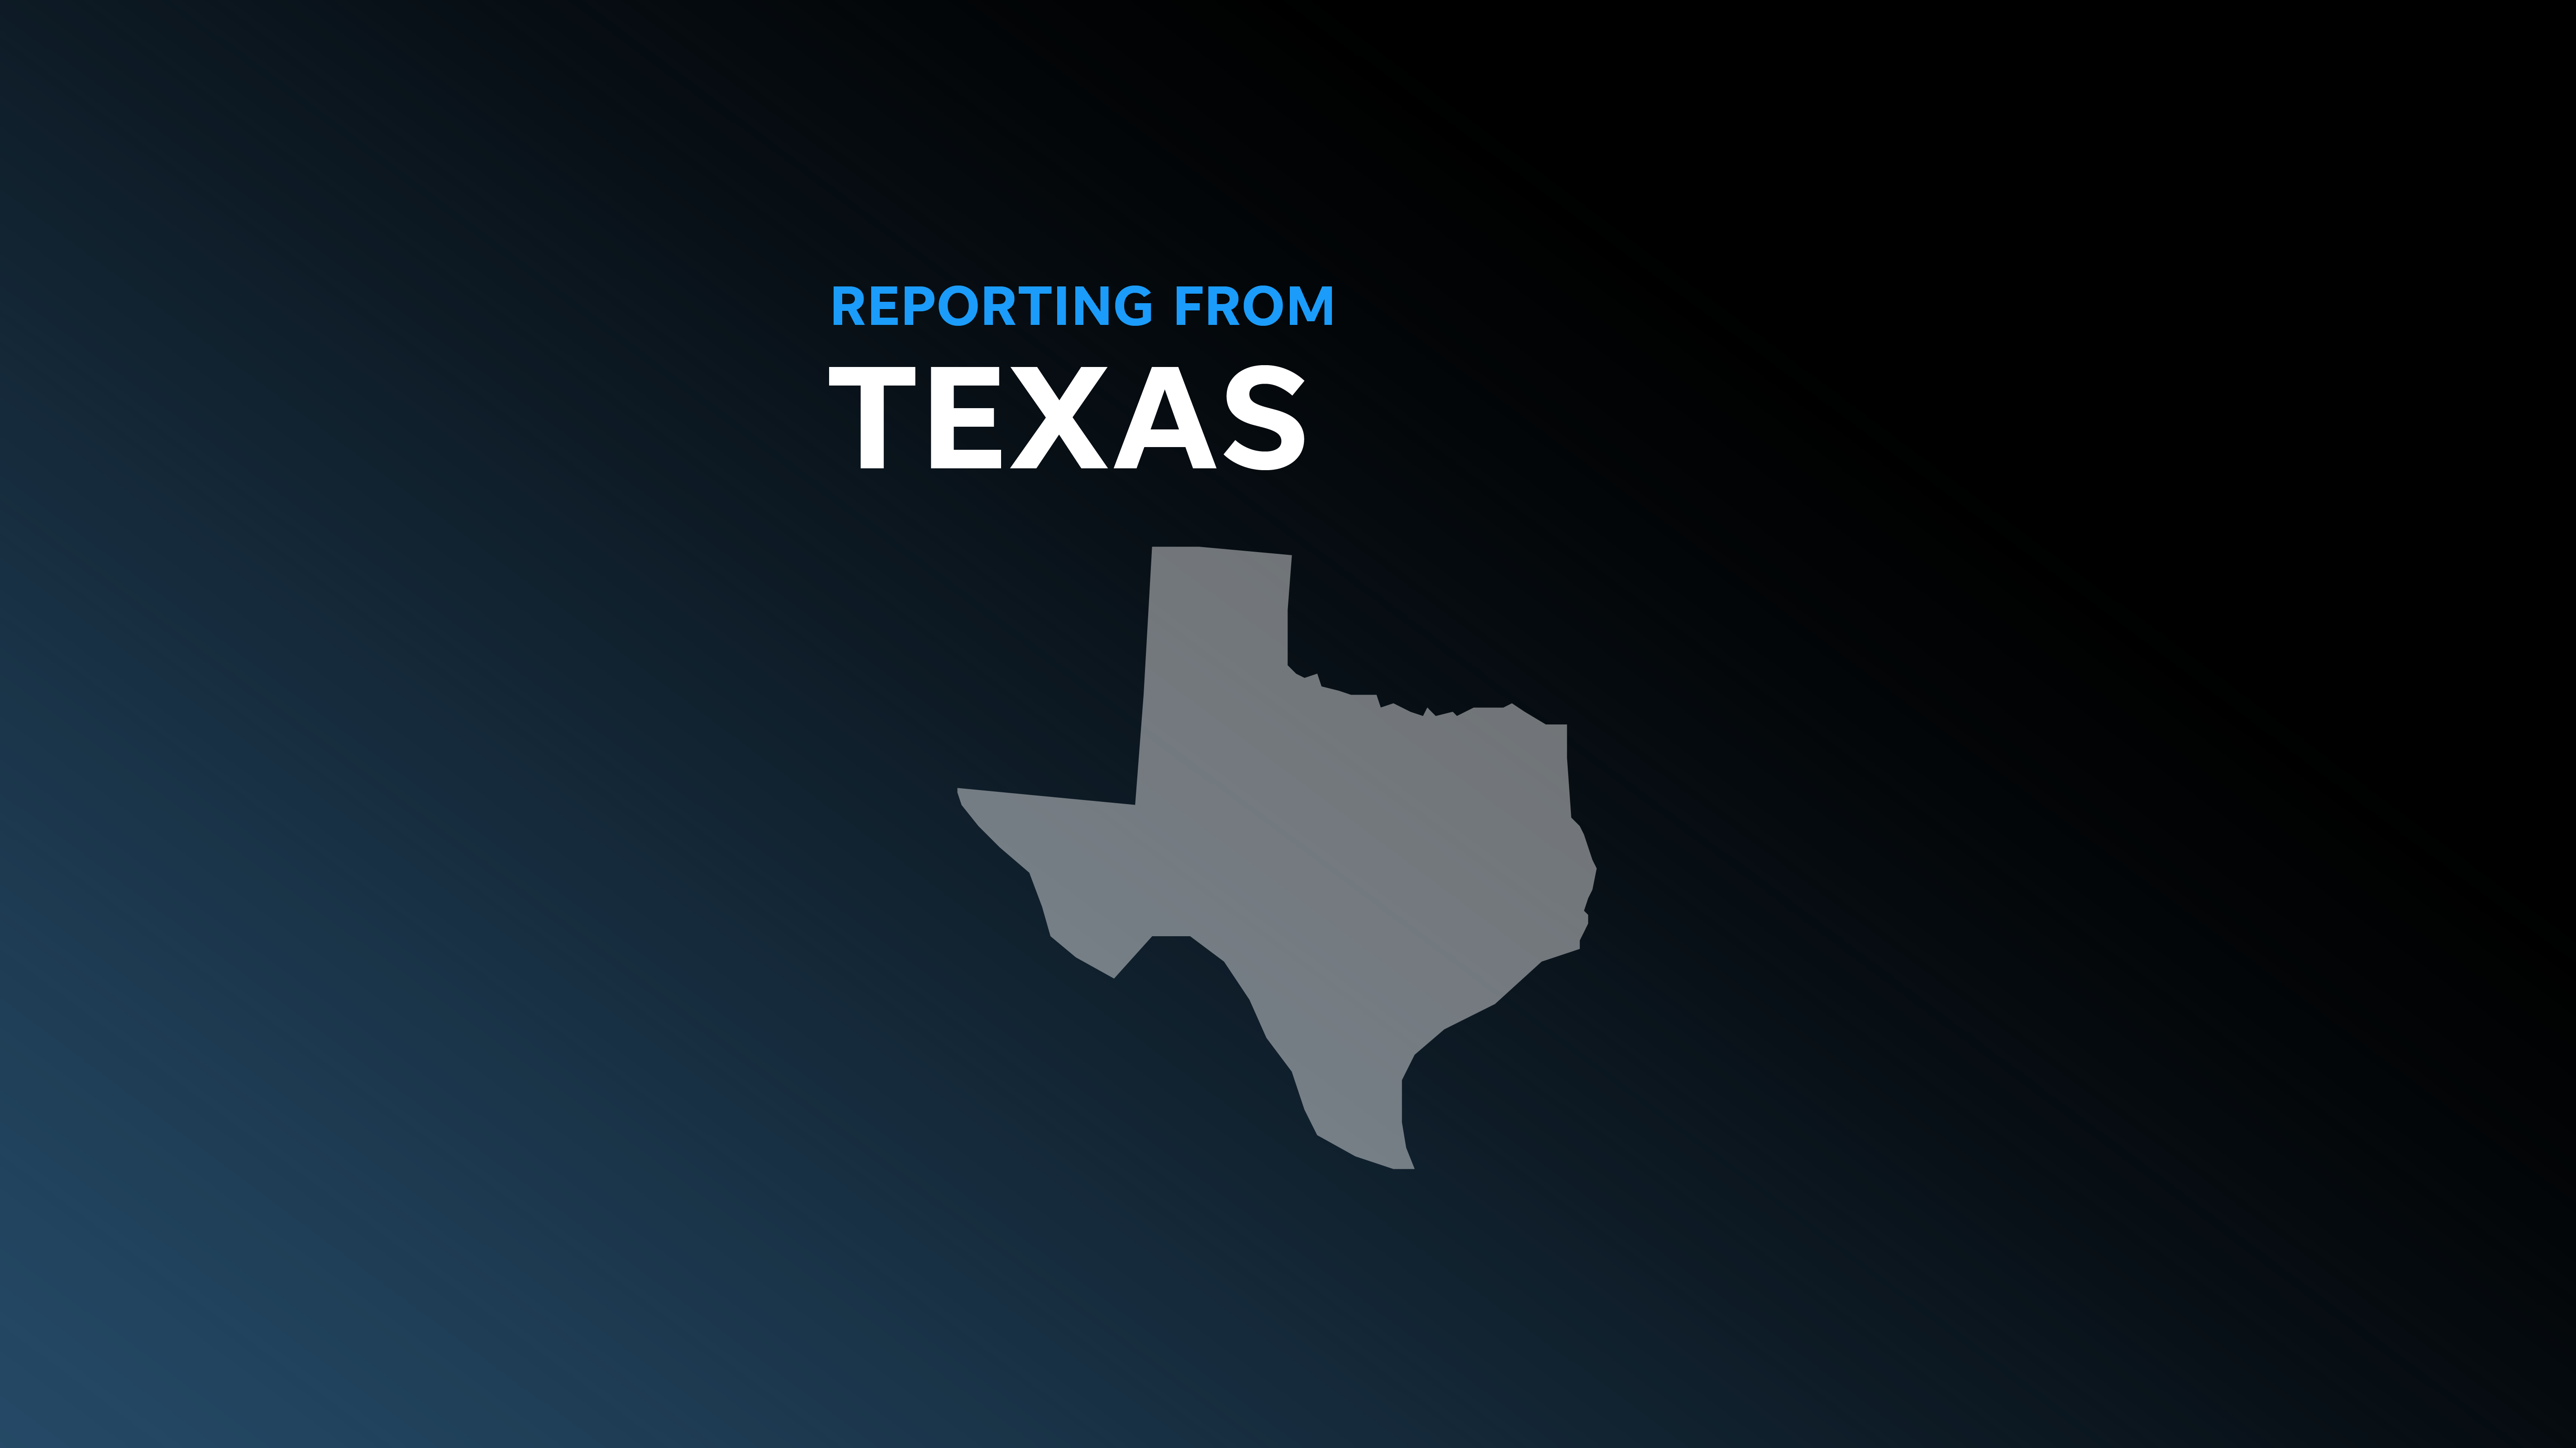 They were ambushed : 1 deputy killed, 2 others wounded in shooting outside Texas bar